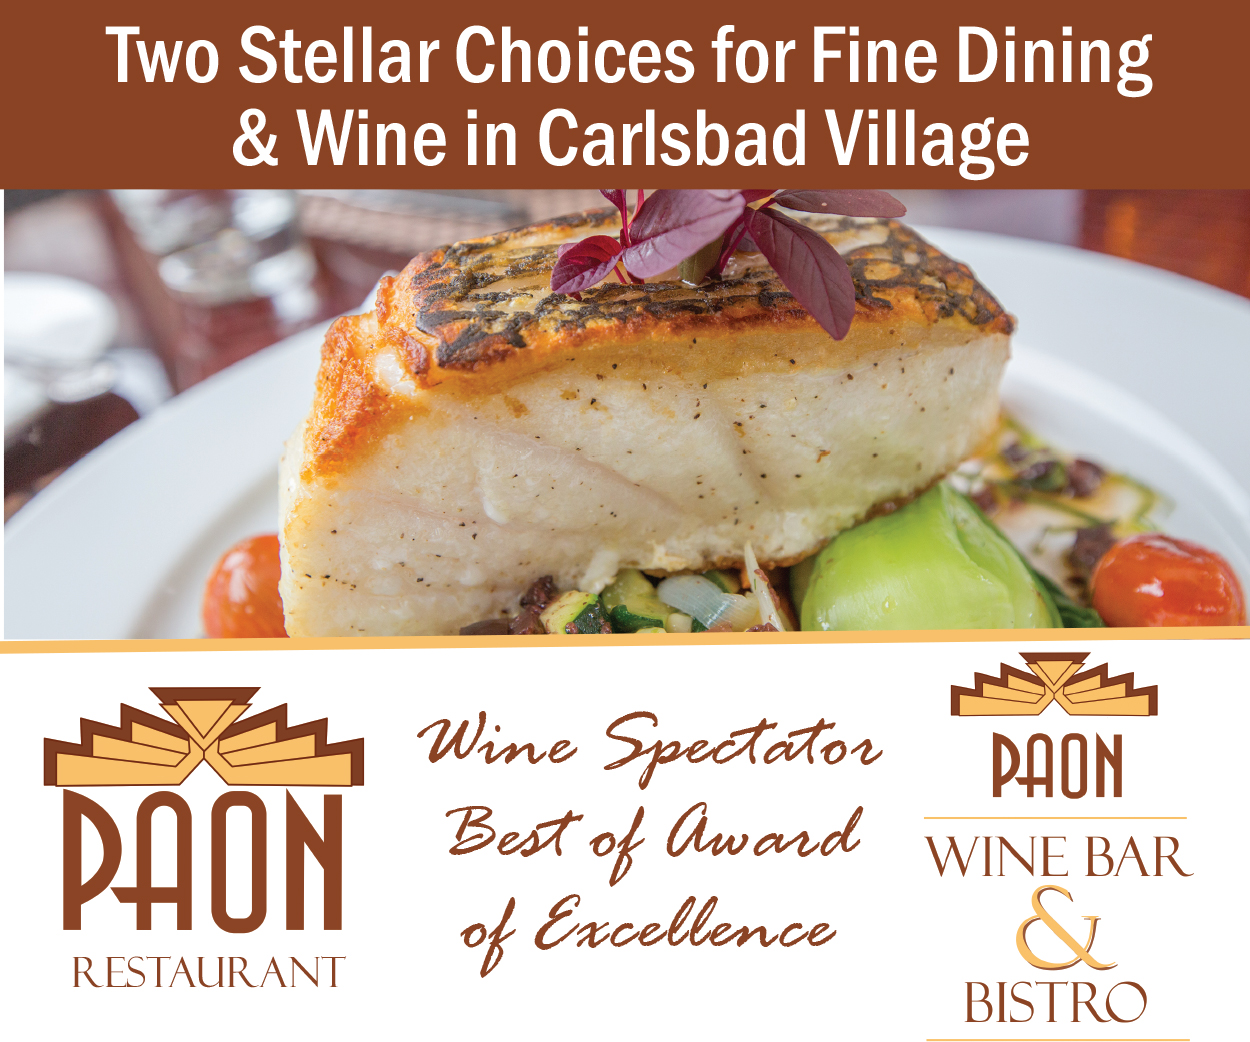 Paon Restaurant Carlsbad